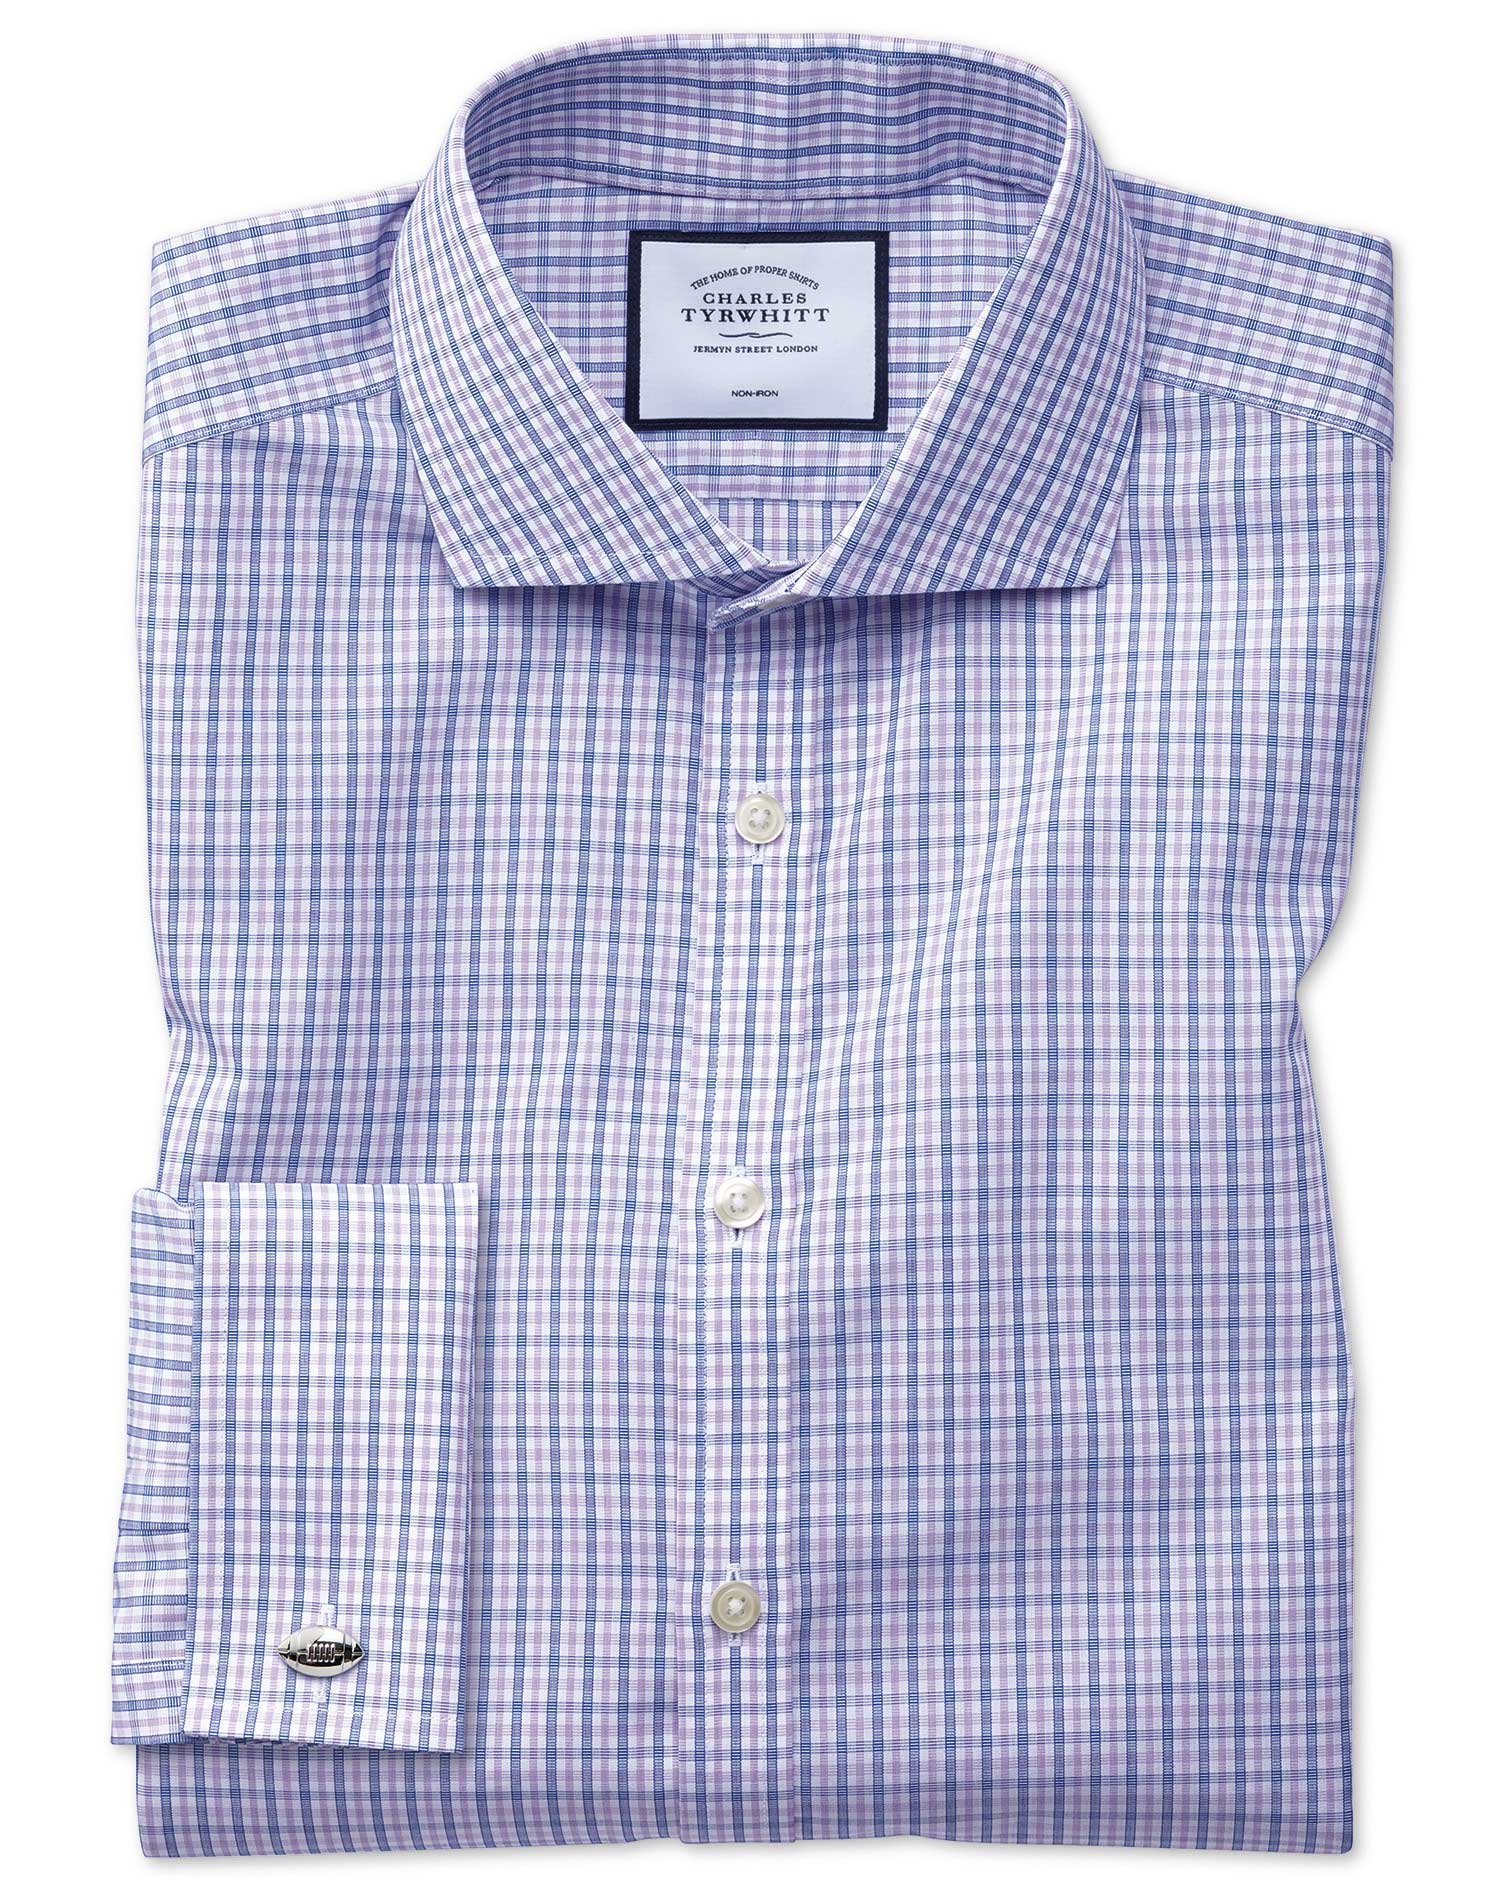 Extra Slim Fit Non-Iron Blue and Purple Check Cotton Formal Shirt Single Cuff Size 15/33 by Charles